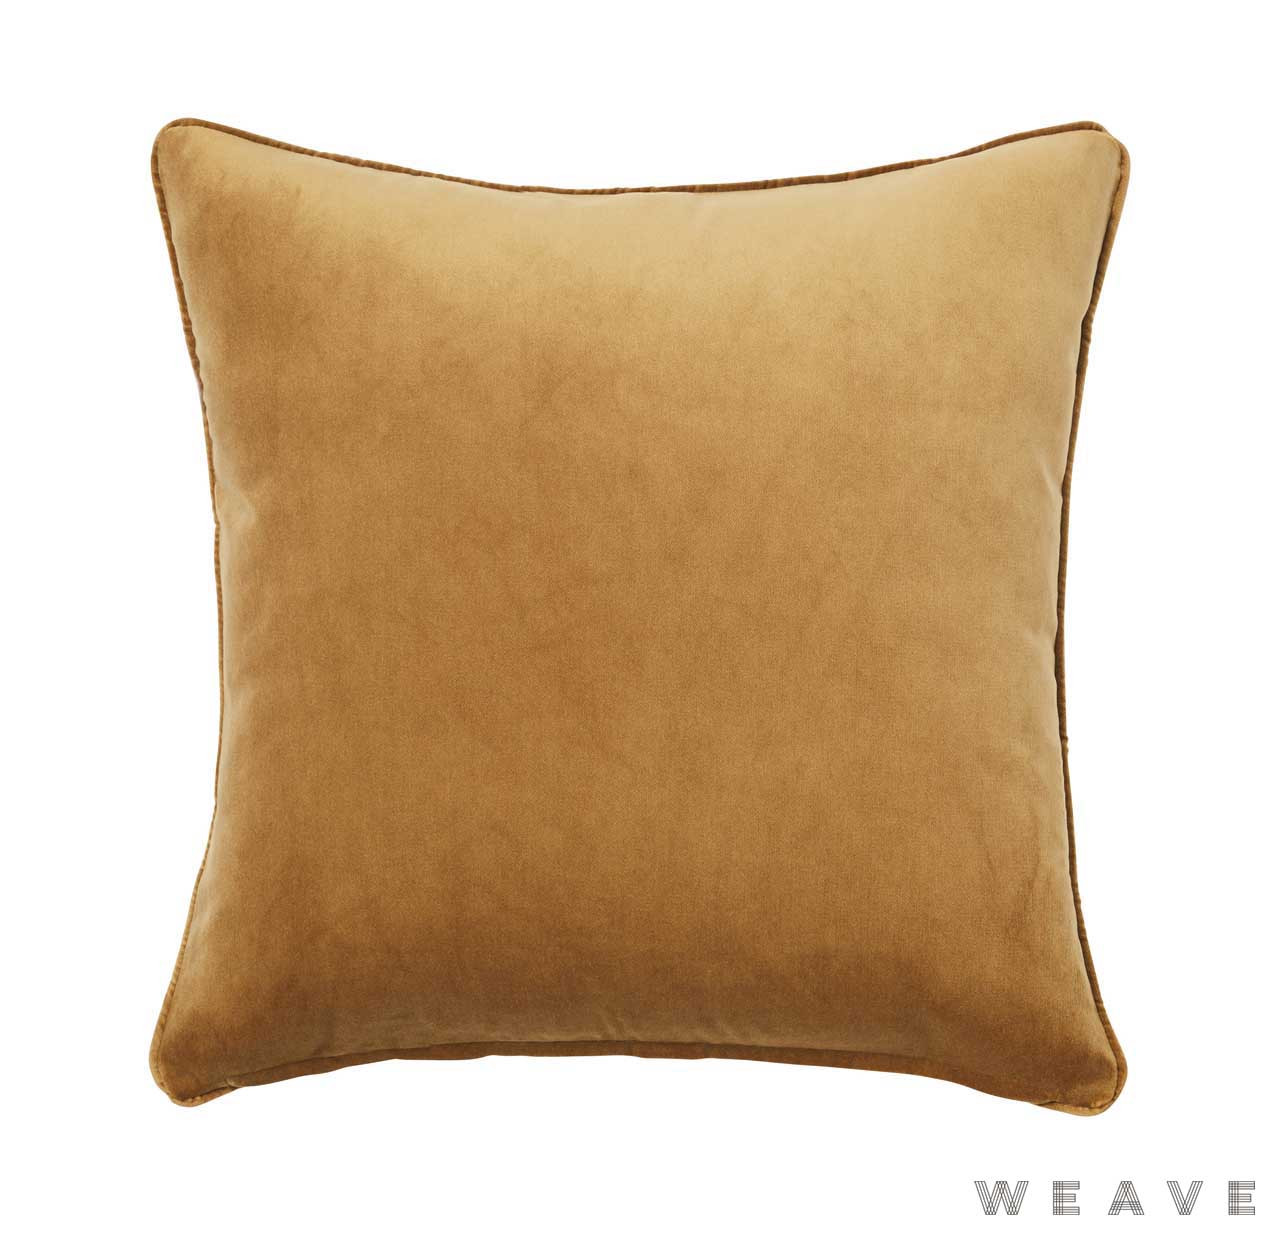 Weave - Zoe Cushion - Brass (Pack of 2)  | Cushion Fabric - Gold,  Yellow, Plain, Traditional, Weave